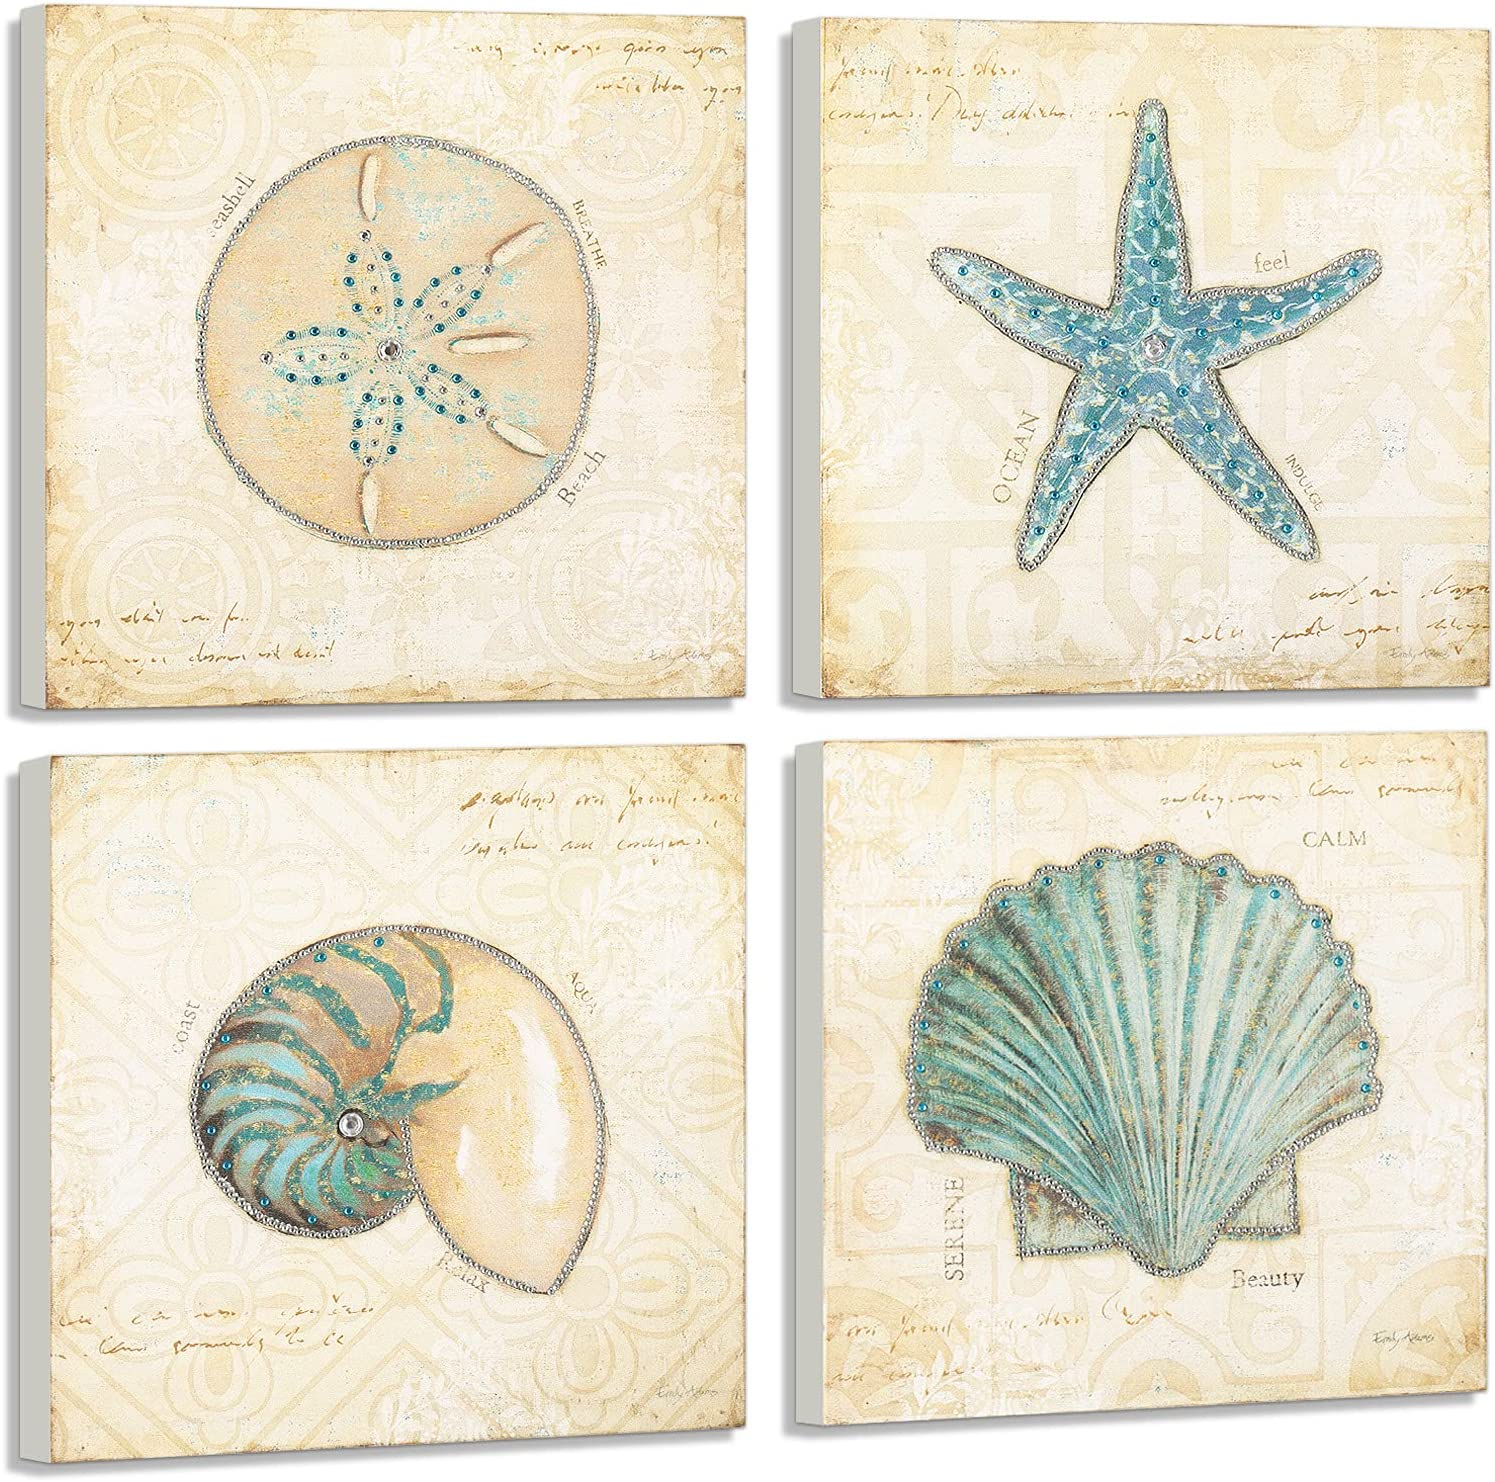 YIMEI Wooden Wall Art Seashell and Rhinestones Shells D Starfish 70% OFF Outlet Max 66% OFF